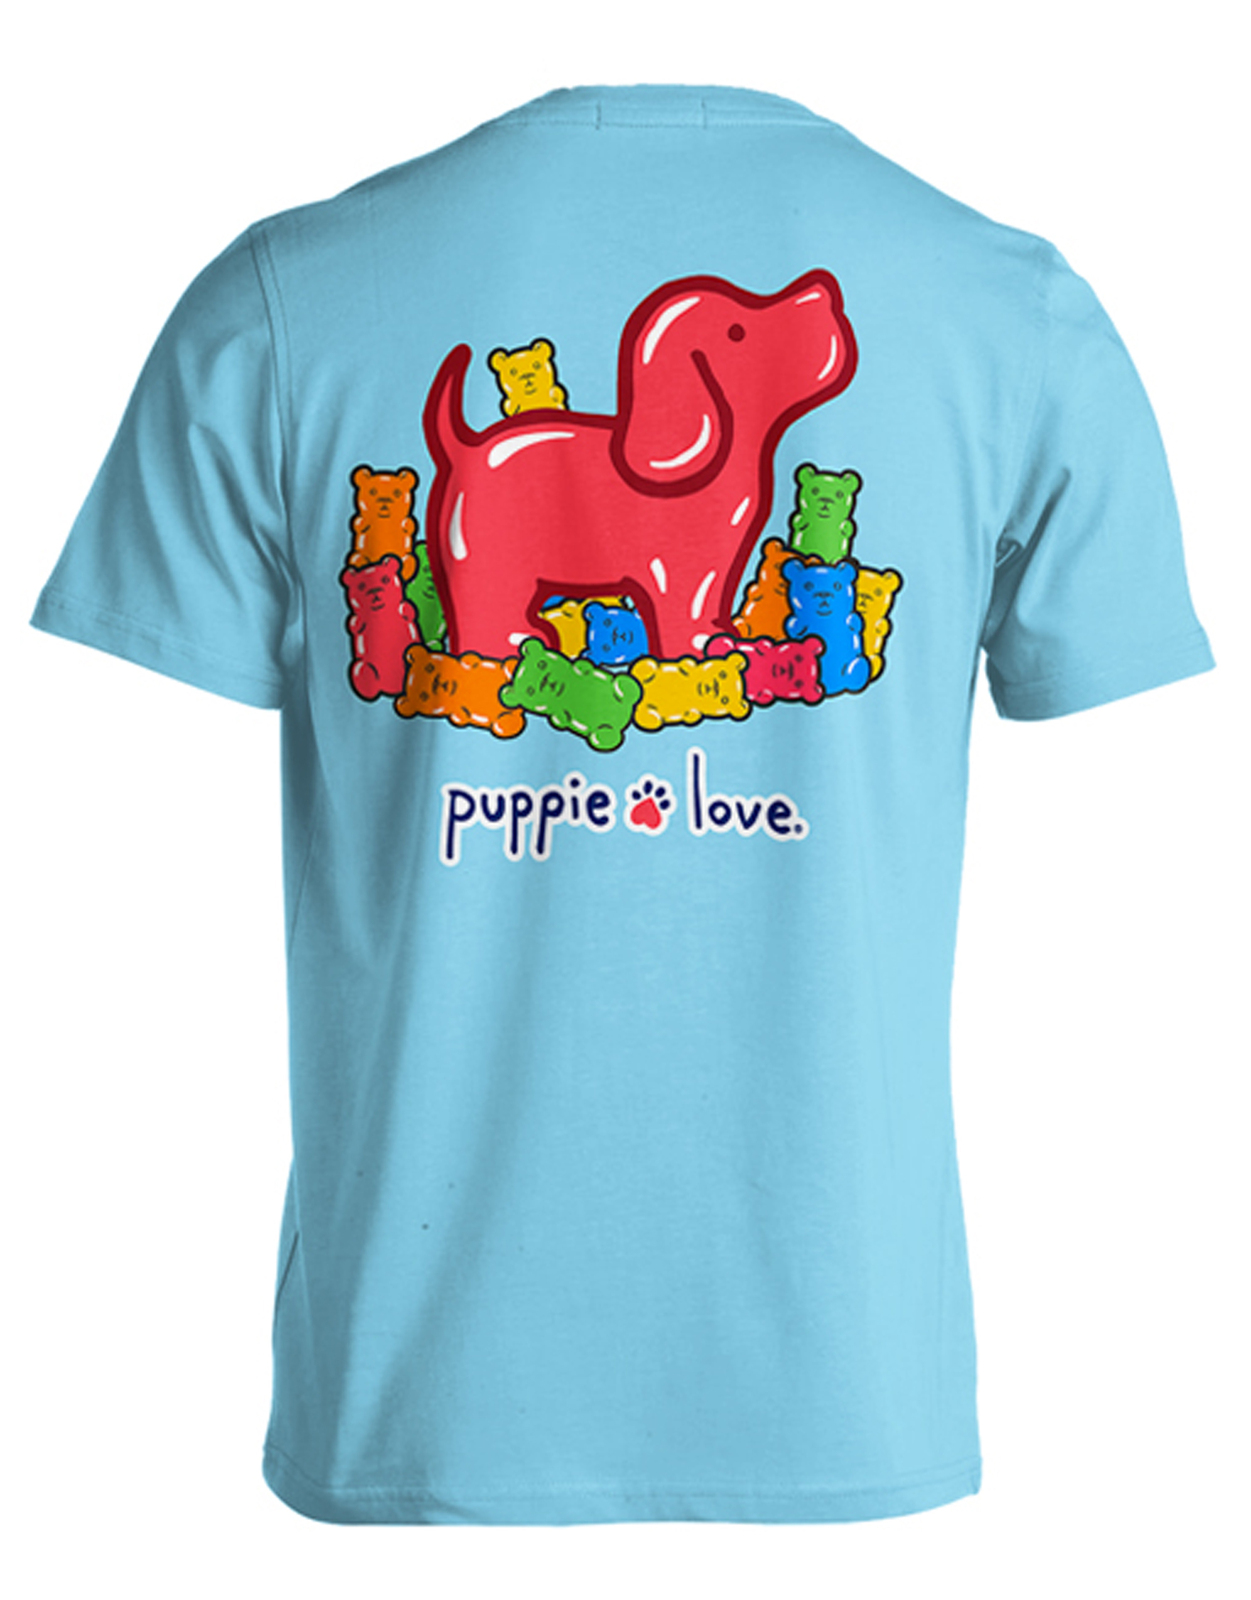 Puppie Love Rescue Dog Adult Unisex Short Sleeve Cotton Tee,Gummie Pup